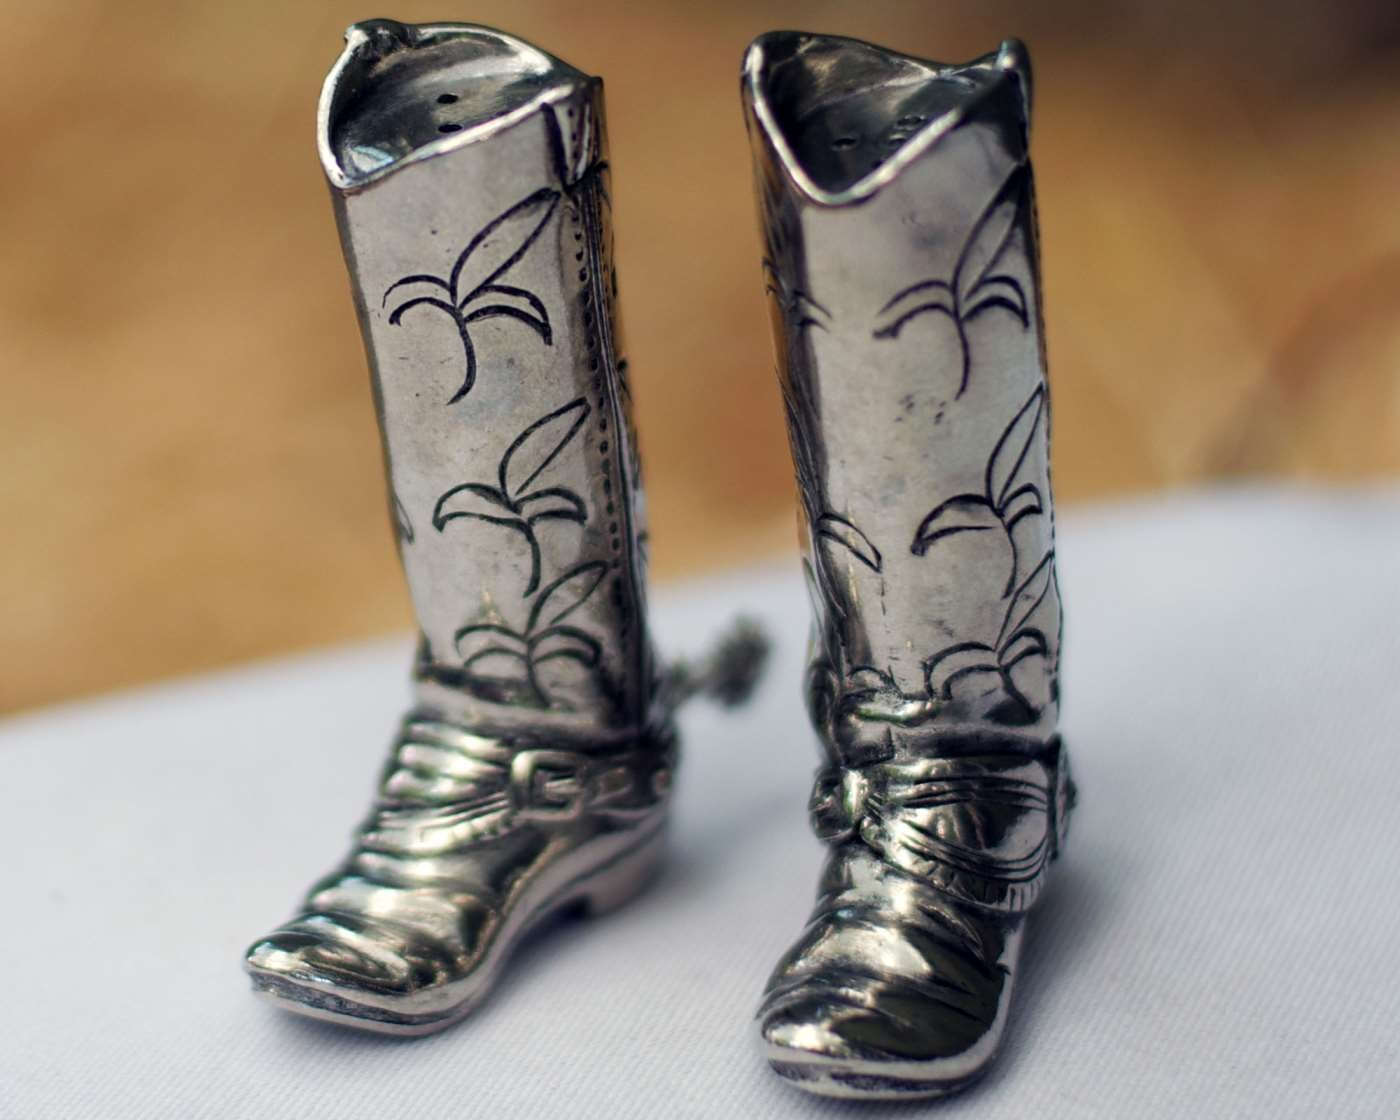 Vagabond House Salt and Pepper - Cowboy Boot